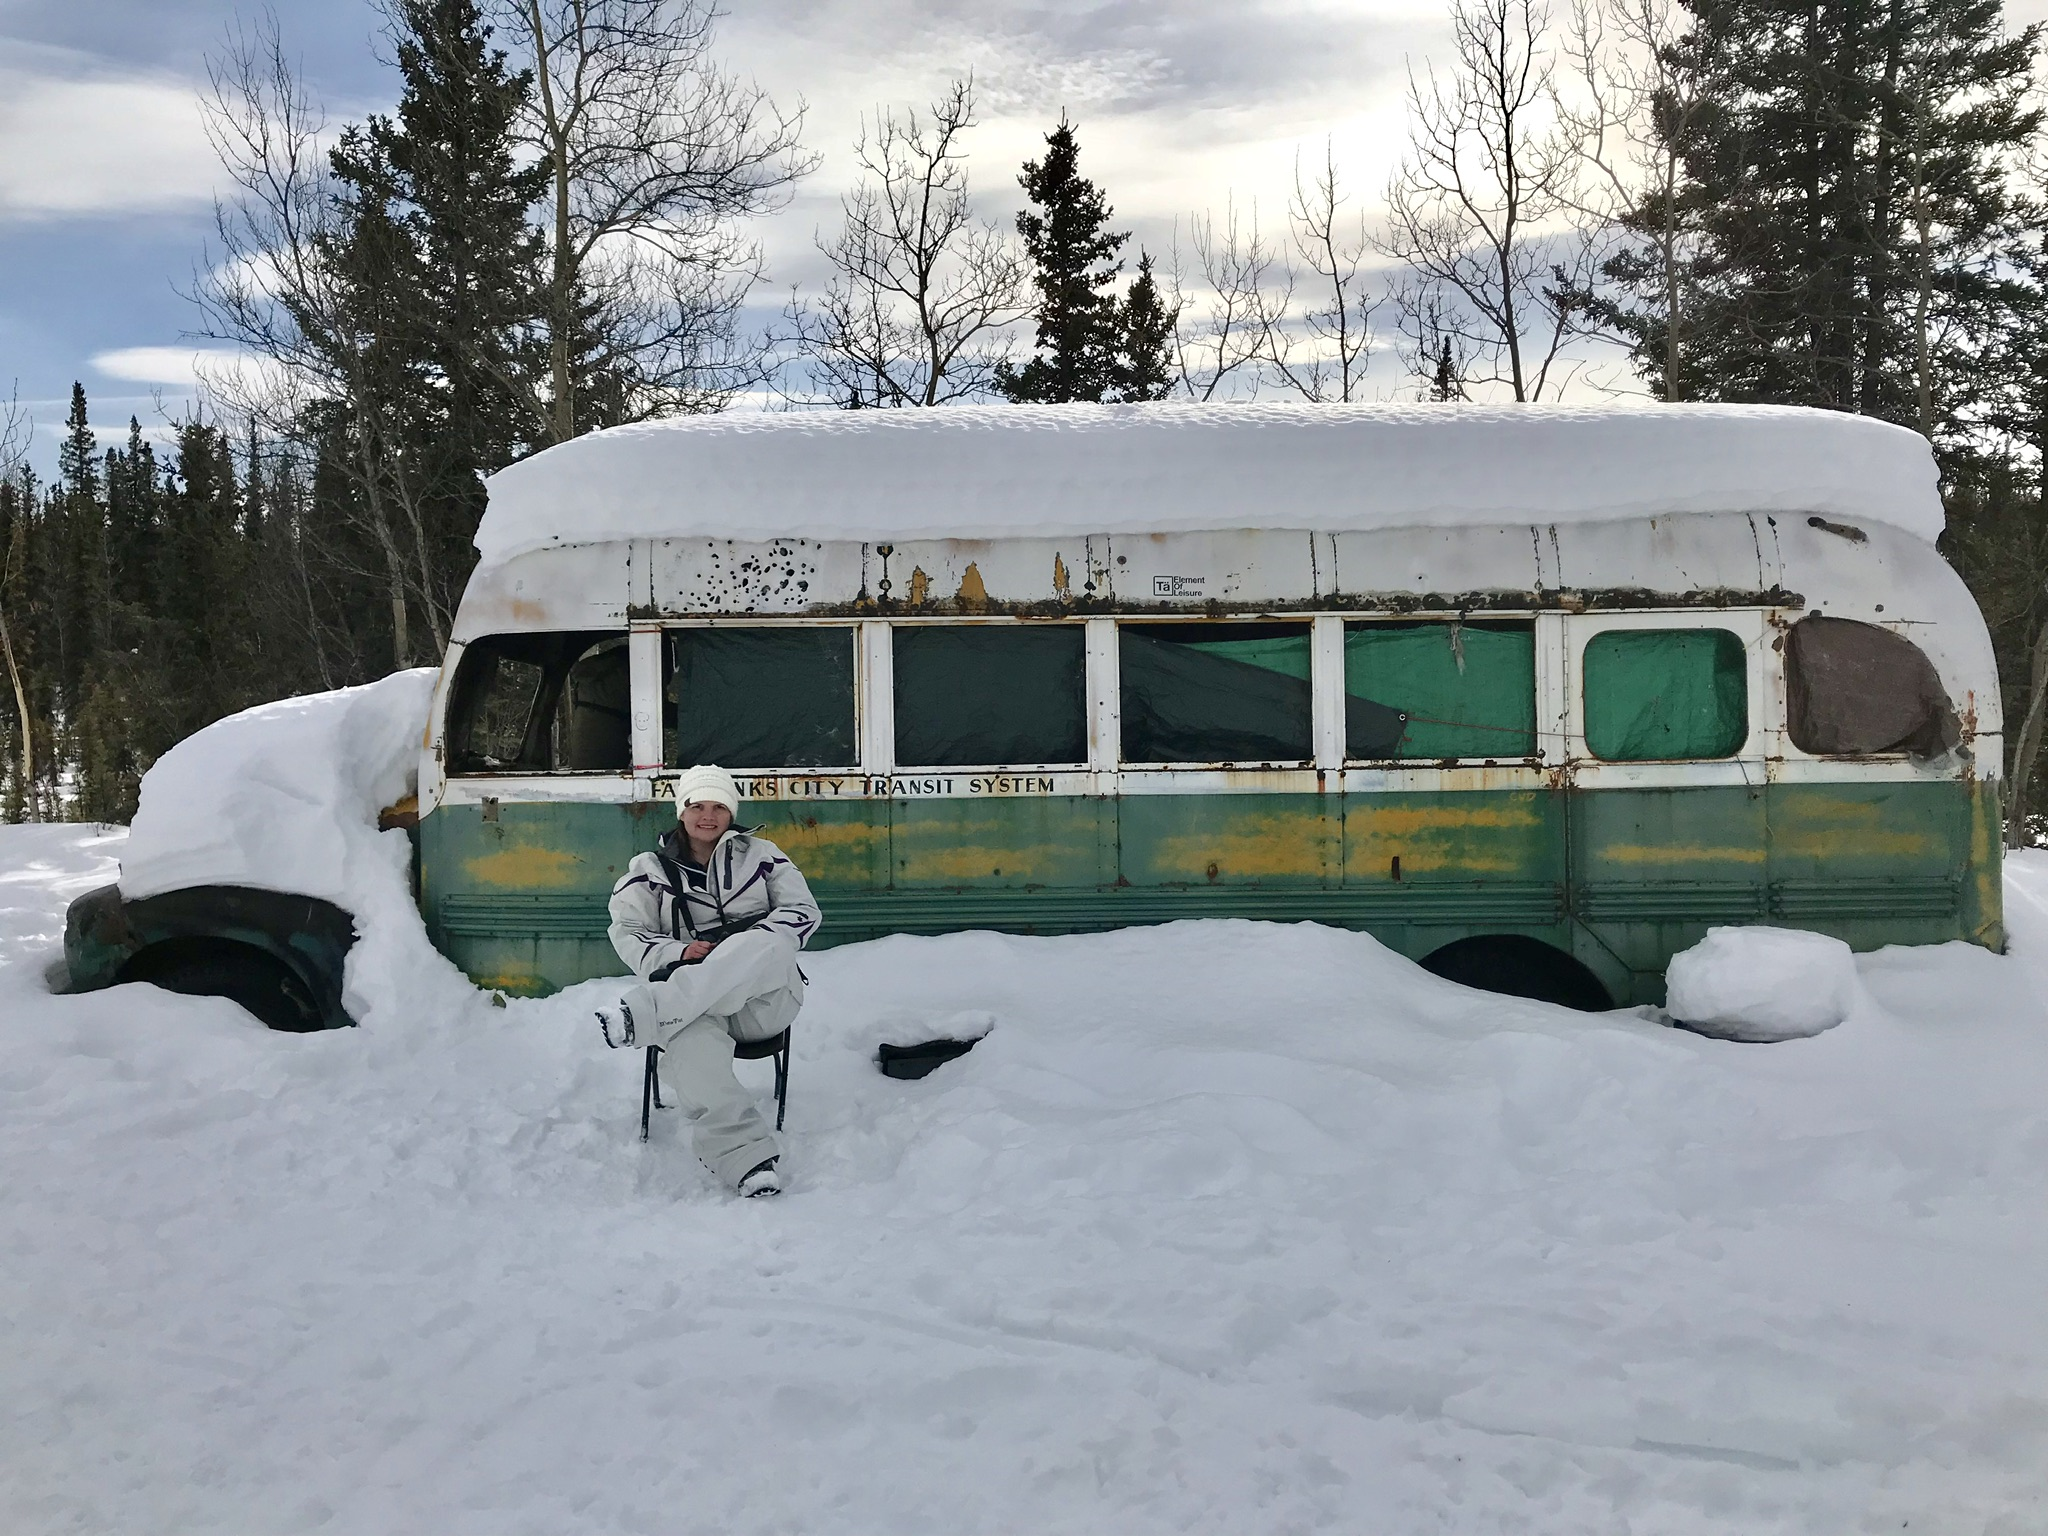 Tiffany Quam at Bus 142 in April of 2017